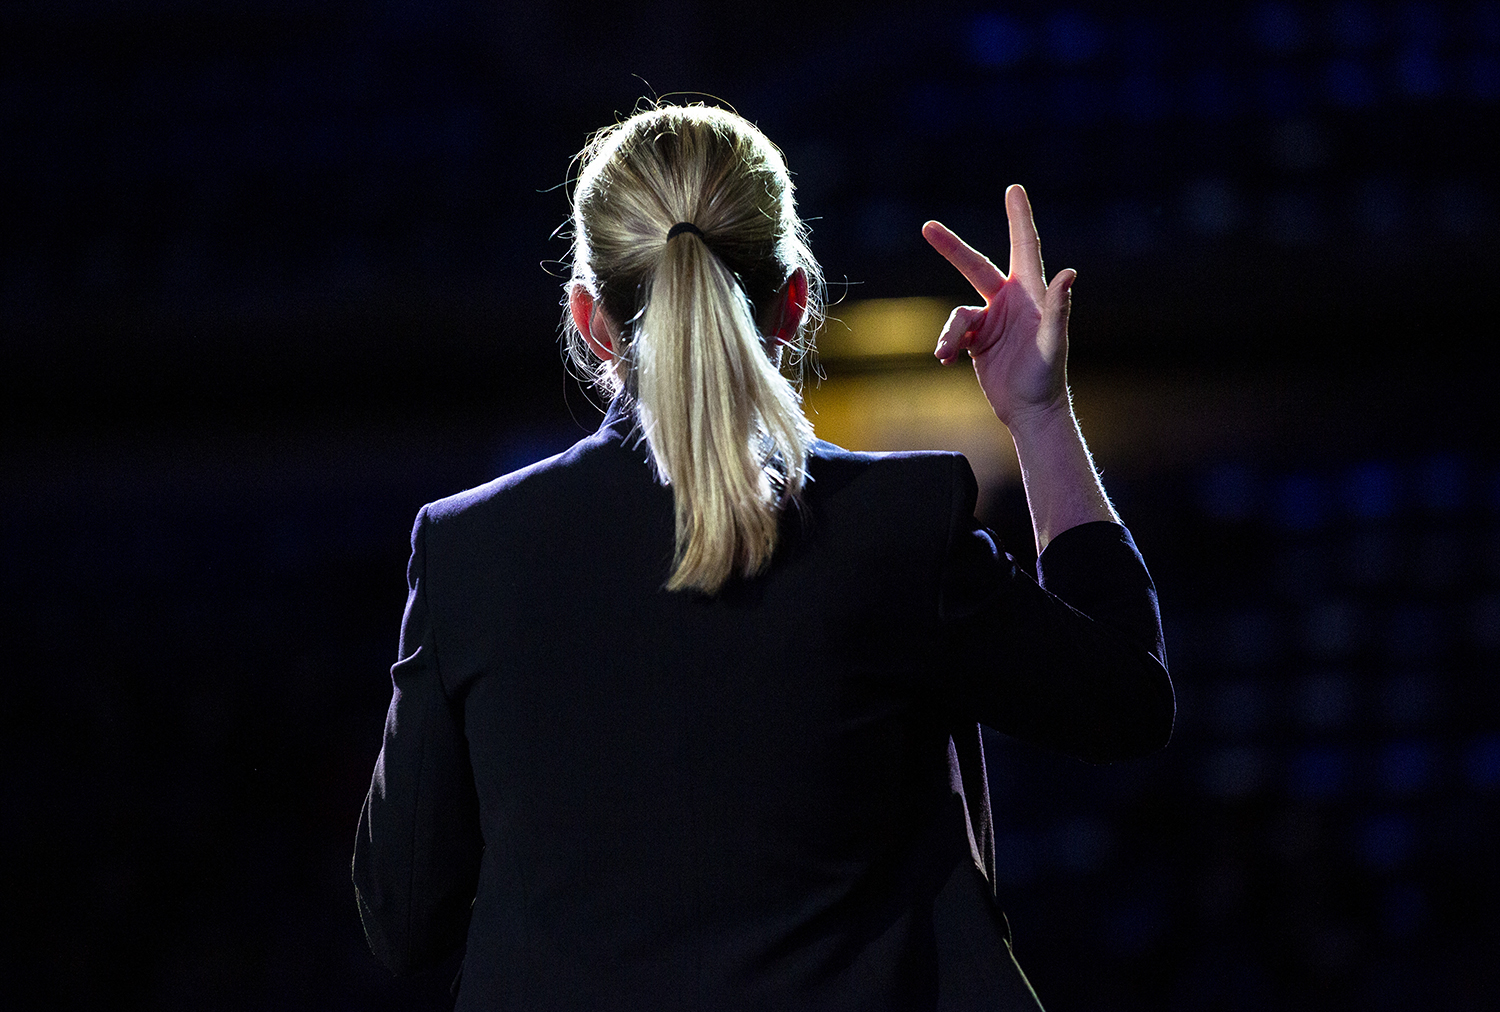 Missy Kinsel interprets in sign language for the Illinois Inaugural Ceremony Monday, Jan. 14, 2019 a the Bank of Springfield Center in Springfield, Ill. [Rich Saal/The State Journal-Register]